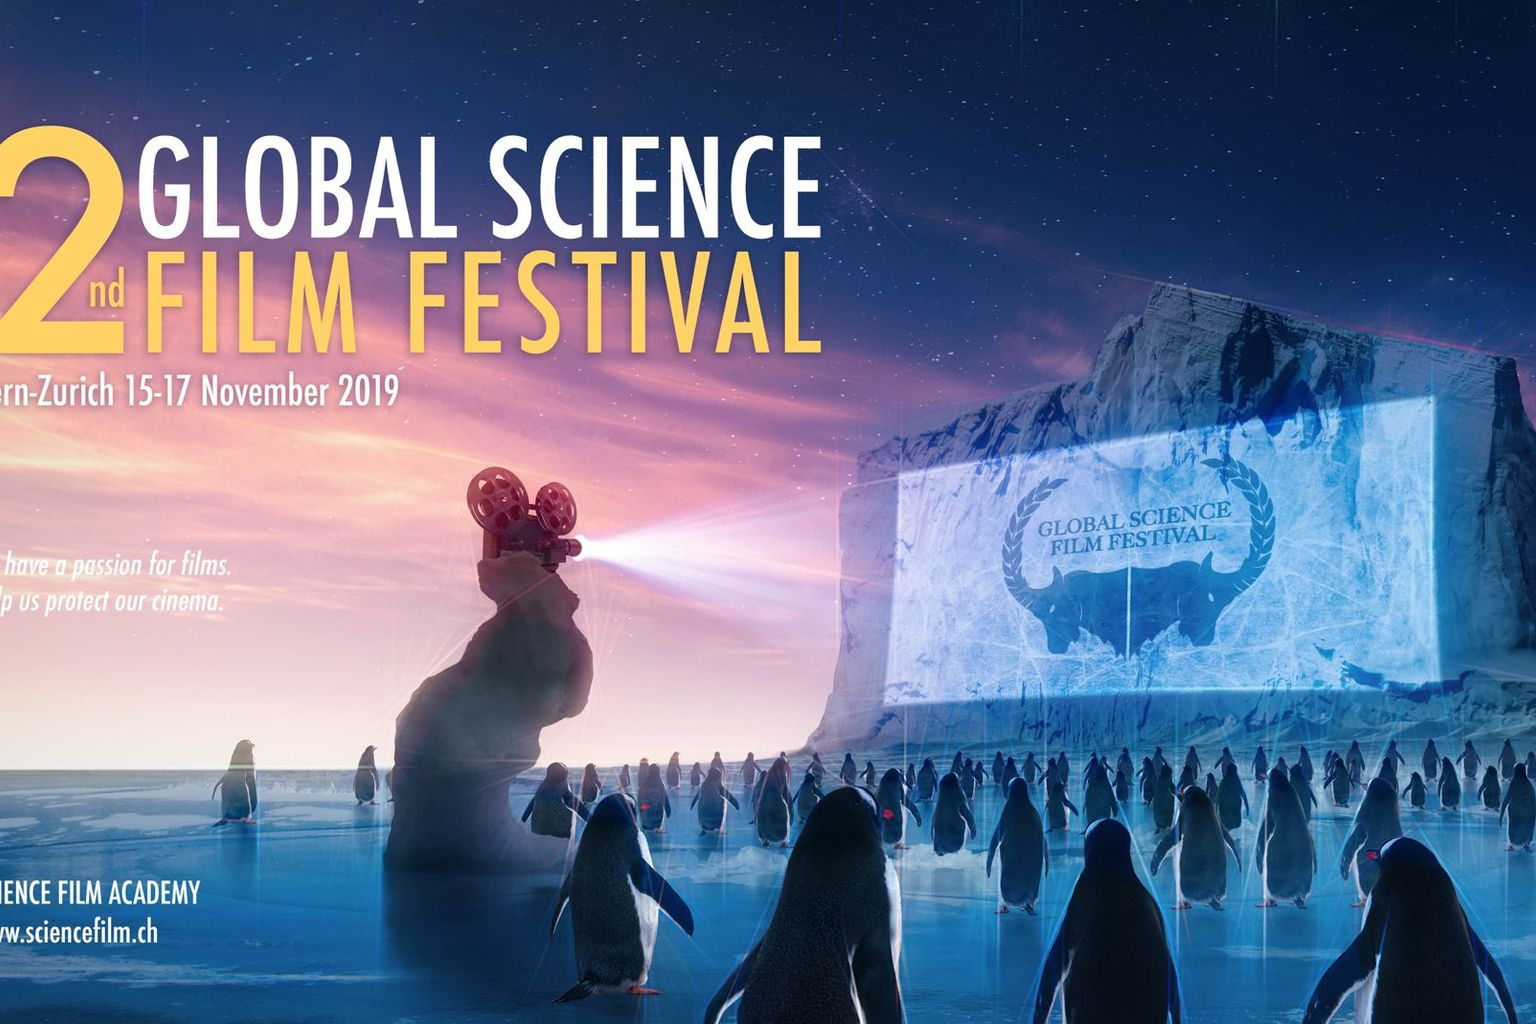 Global Science Film Festival